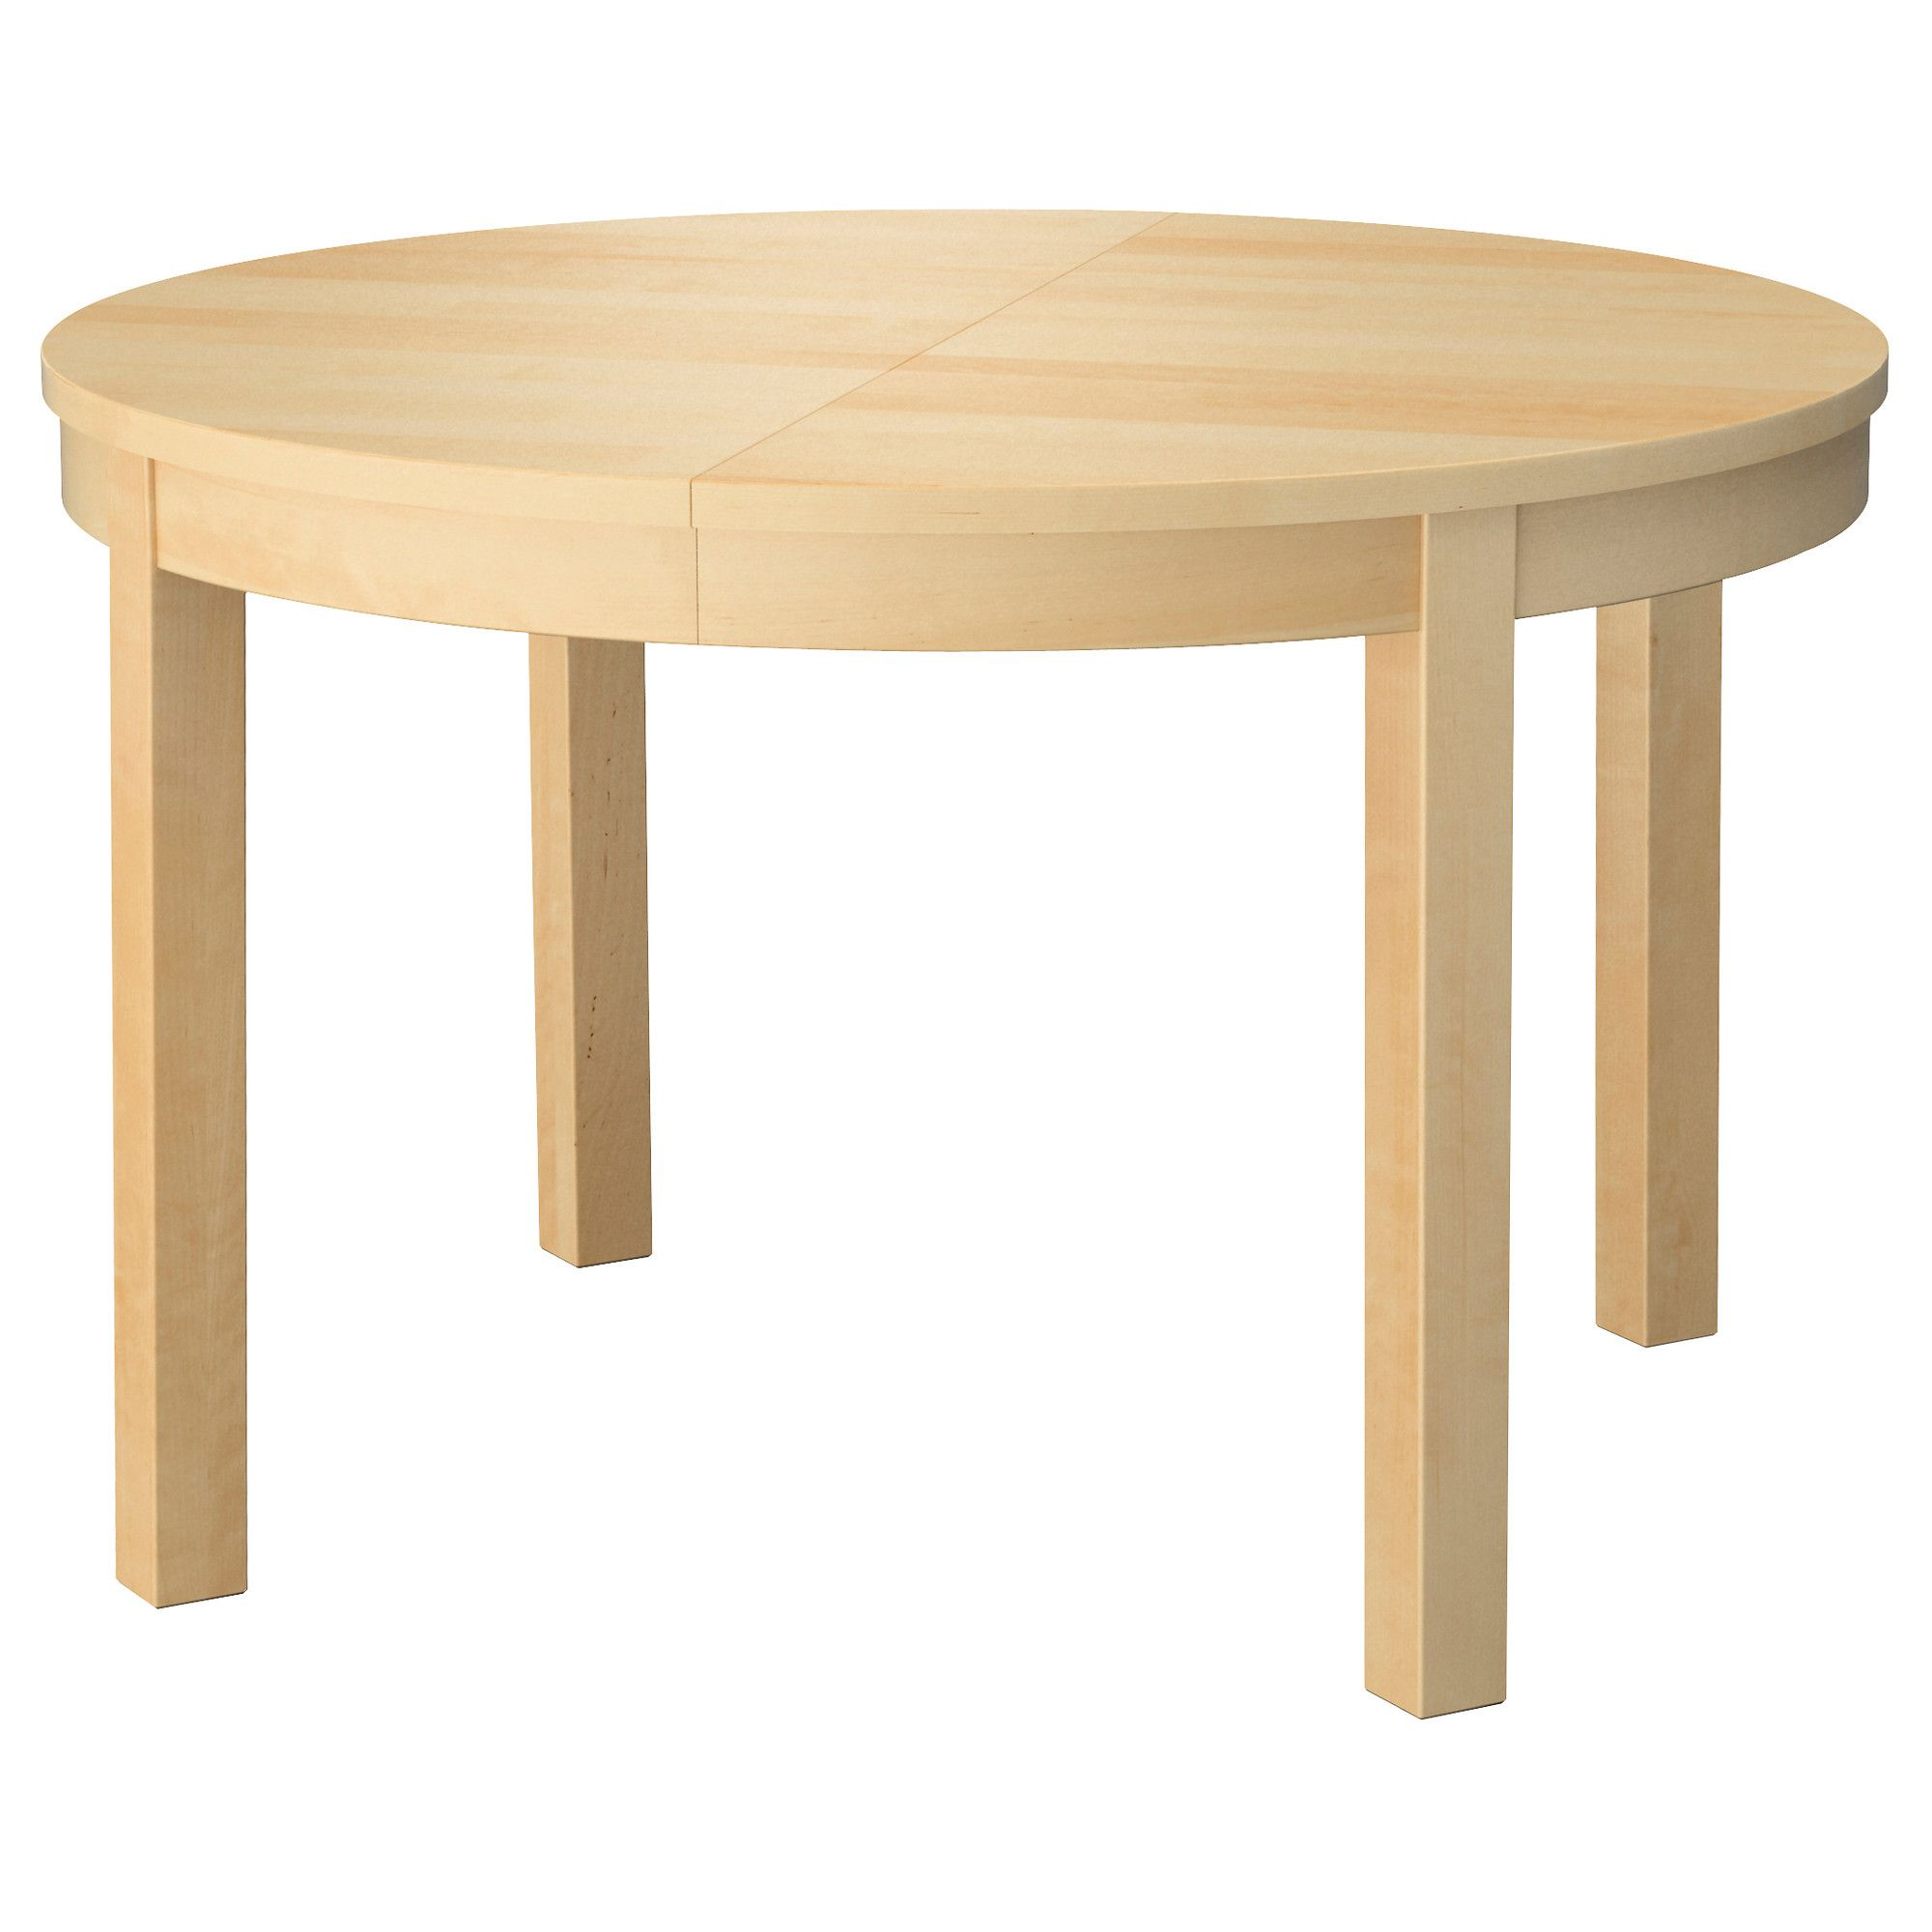 BJURSTA Extendable table birch veneer IKEA seats 4 6 would be